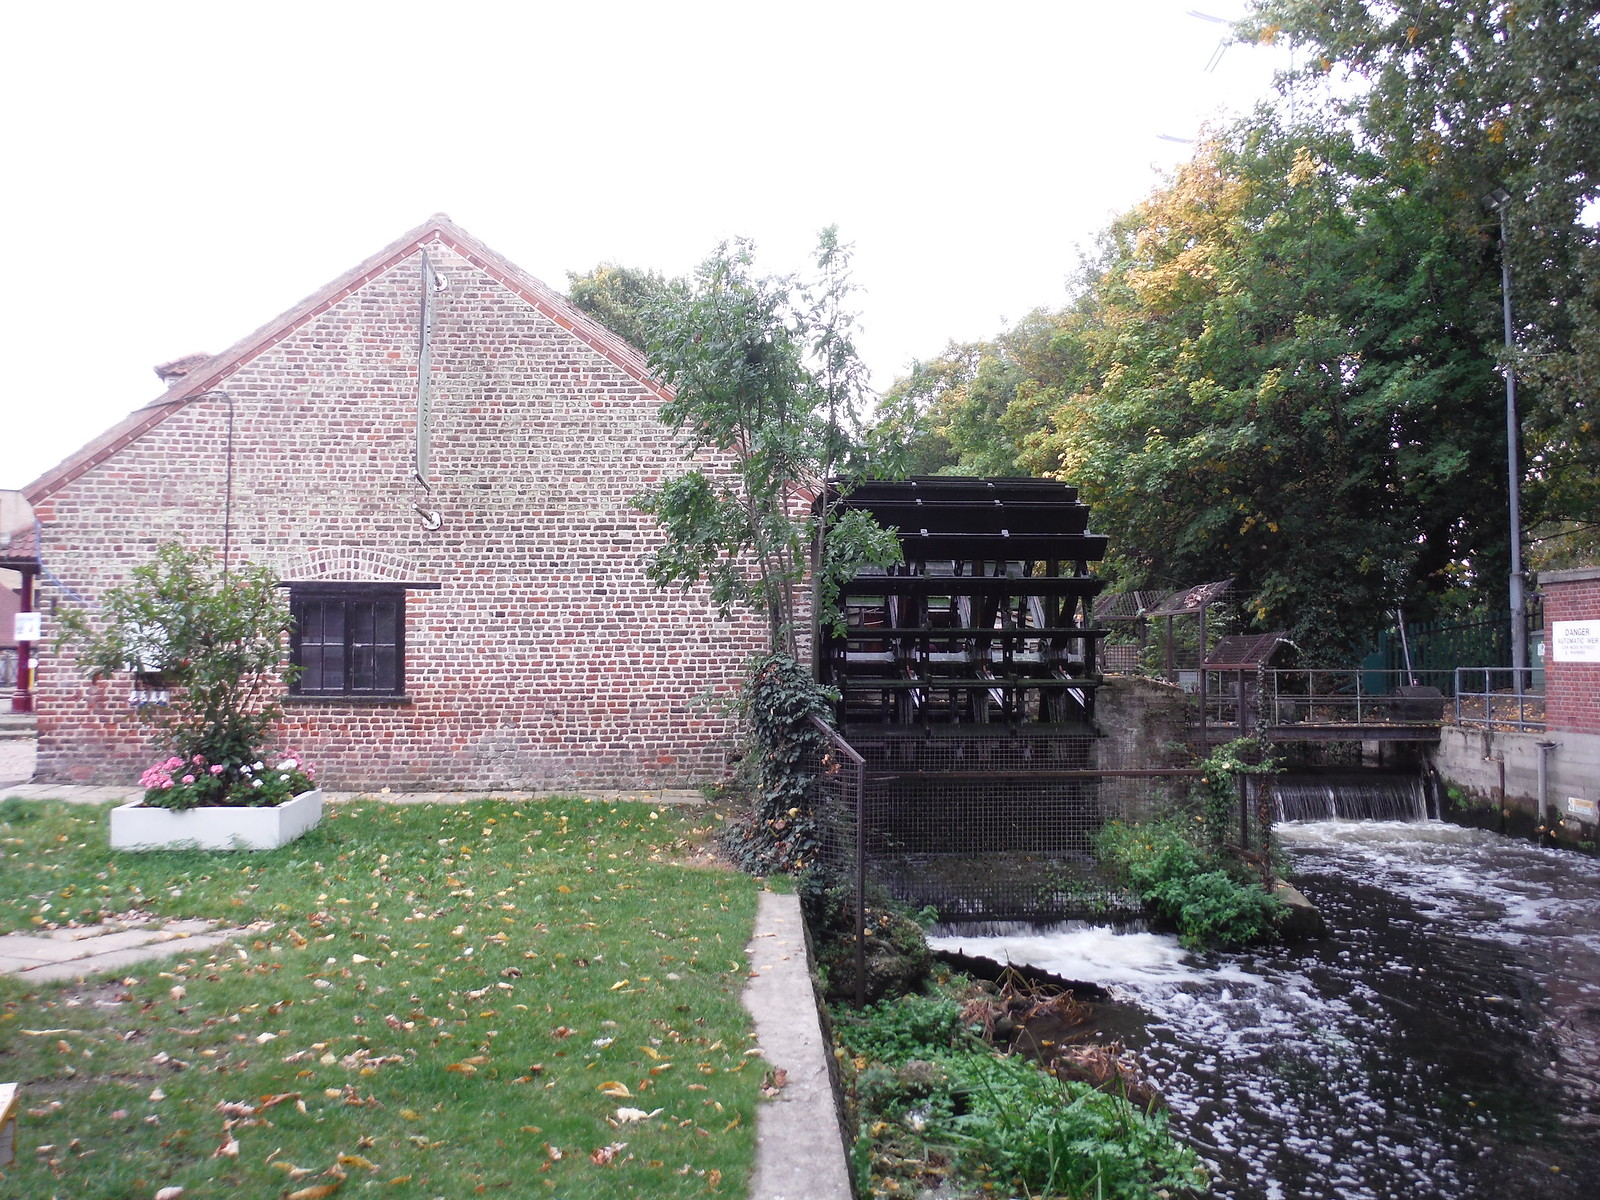 Wheelhouse on River Wandle, Merton Abbey Mills SWC Walk Short 13 - Morden Hall Park and Merton Abbey Mills